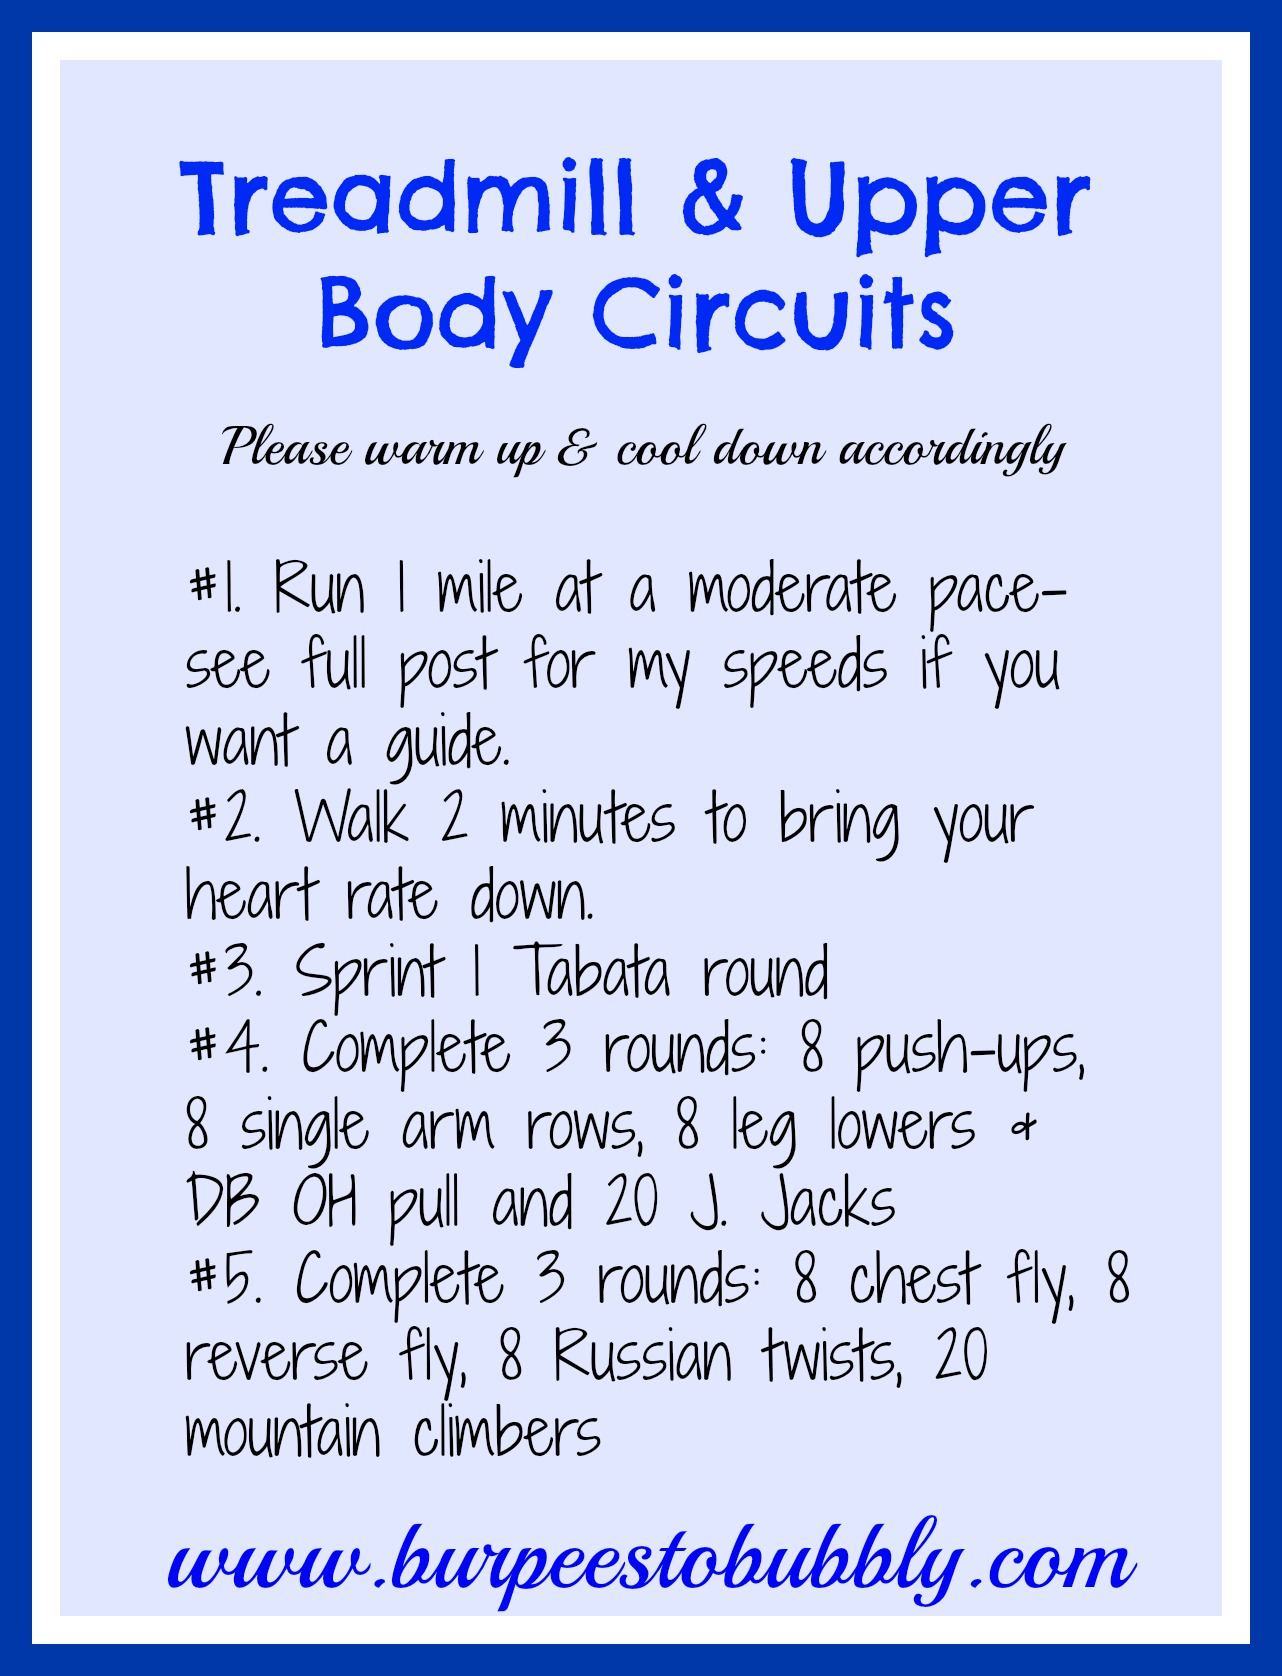 Wednesday Workout: Treadmill & 2 Upper Body Circuits